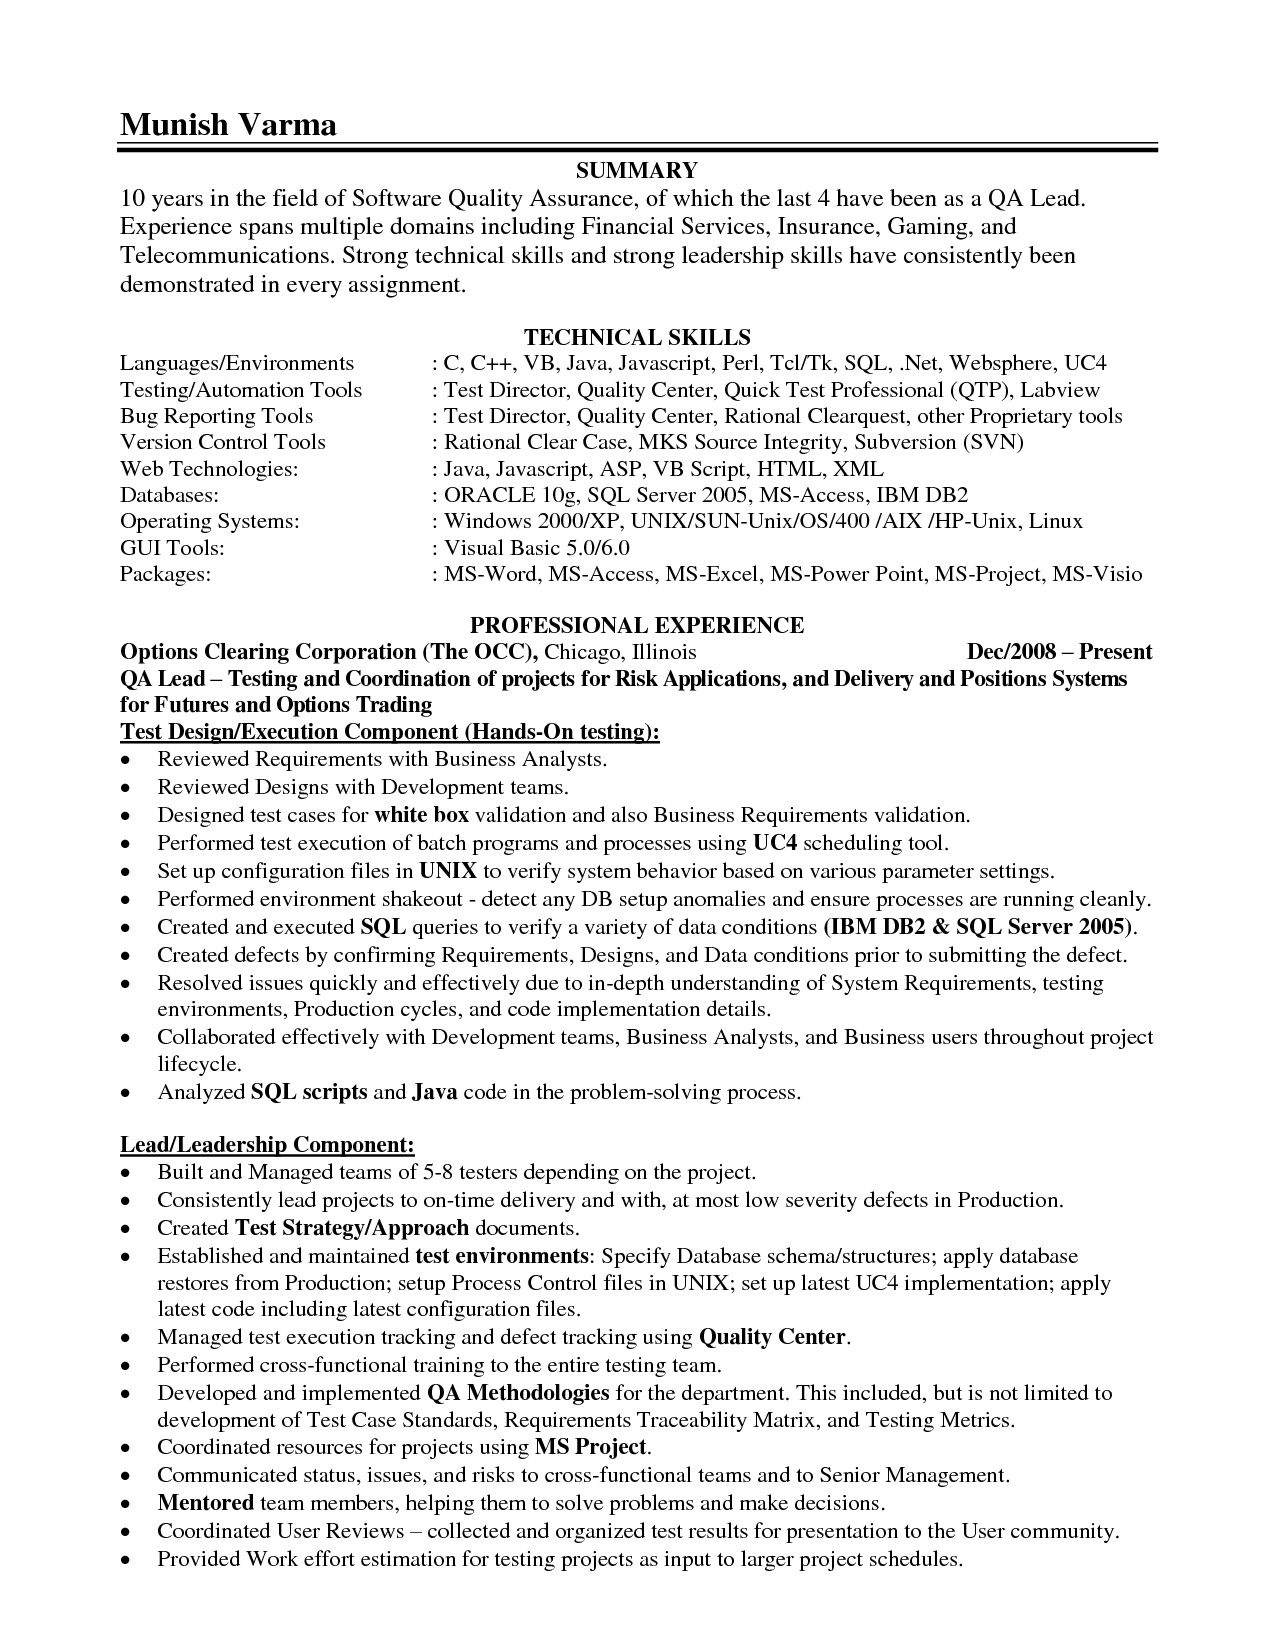 Resume Leadership Skills Examples 7 How To Describe Leadership Skills On Resume  Resume How To List .  Resume Skills Examples List